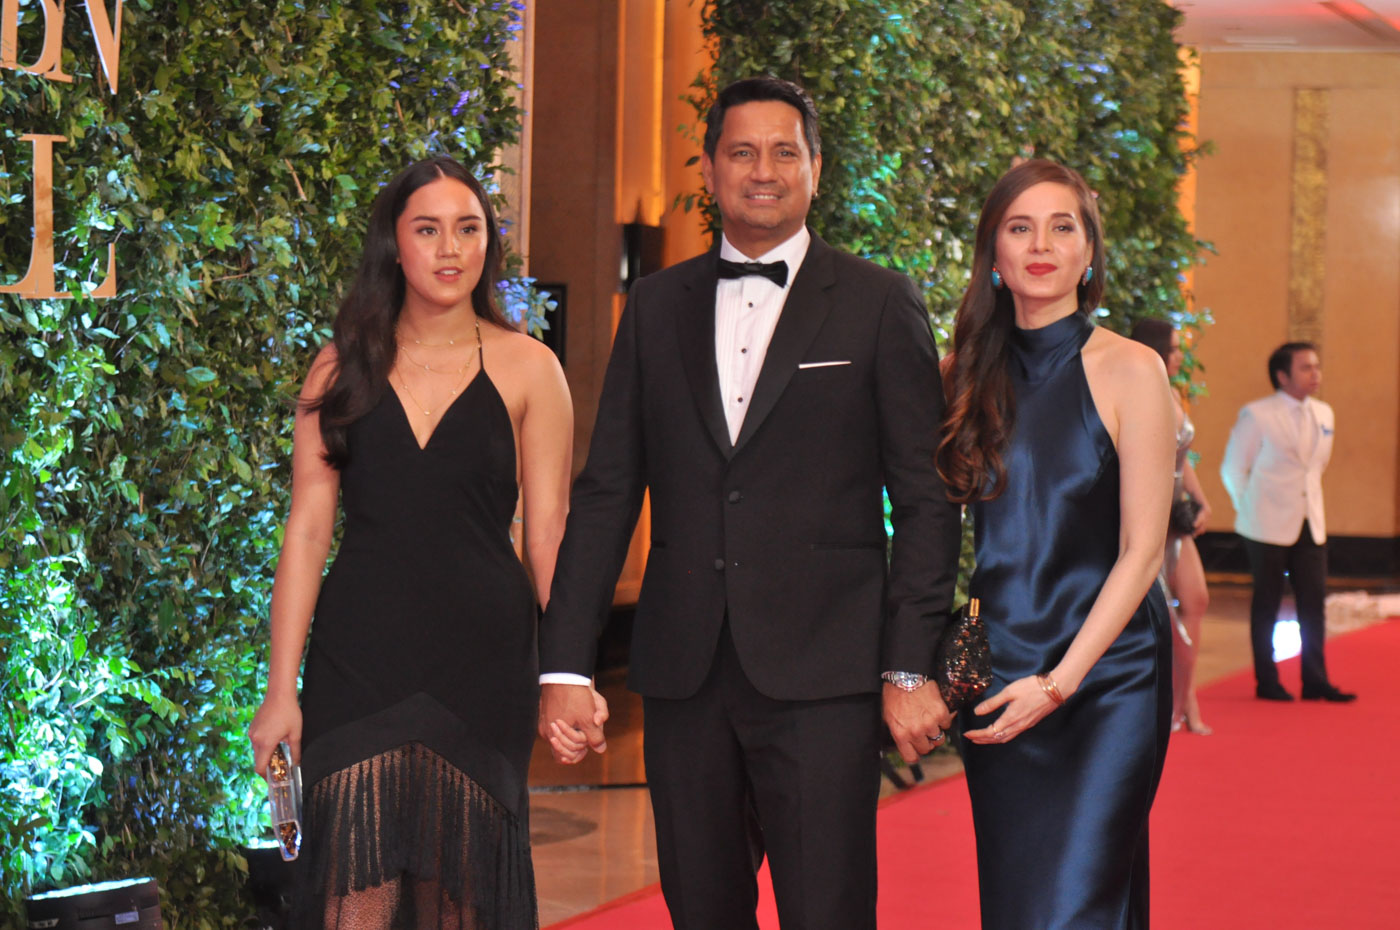 FAMILY AFFAIR. Richard Gomez, wife Lucy and daughter Juliana at lat year's ball. File photo by Jay Ganzon/Rappler